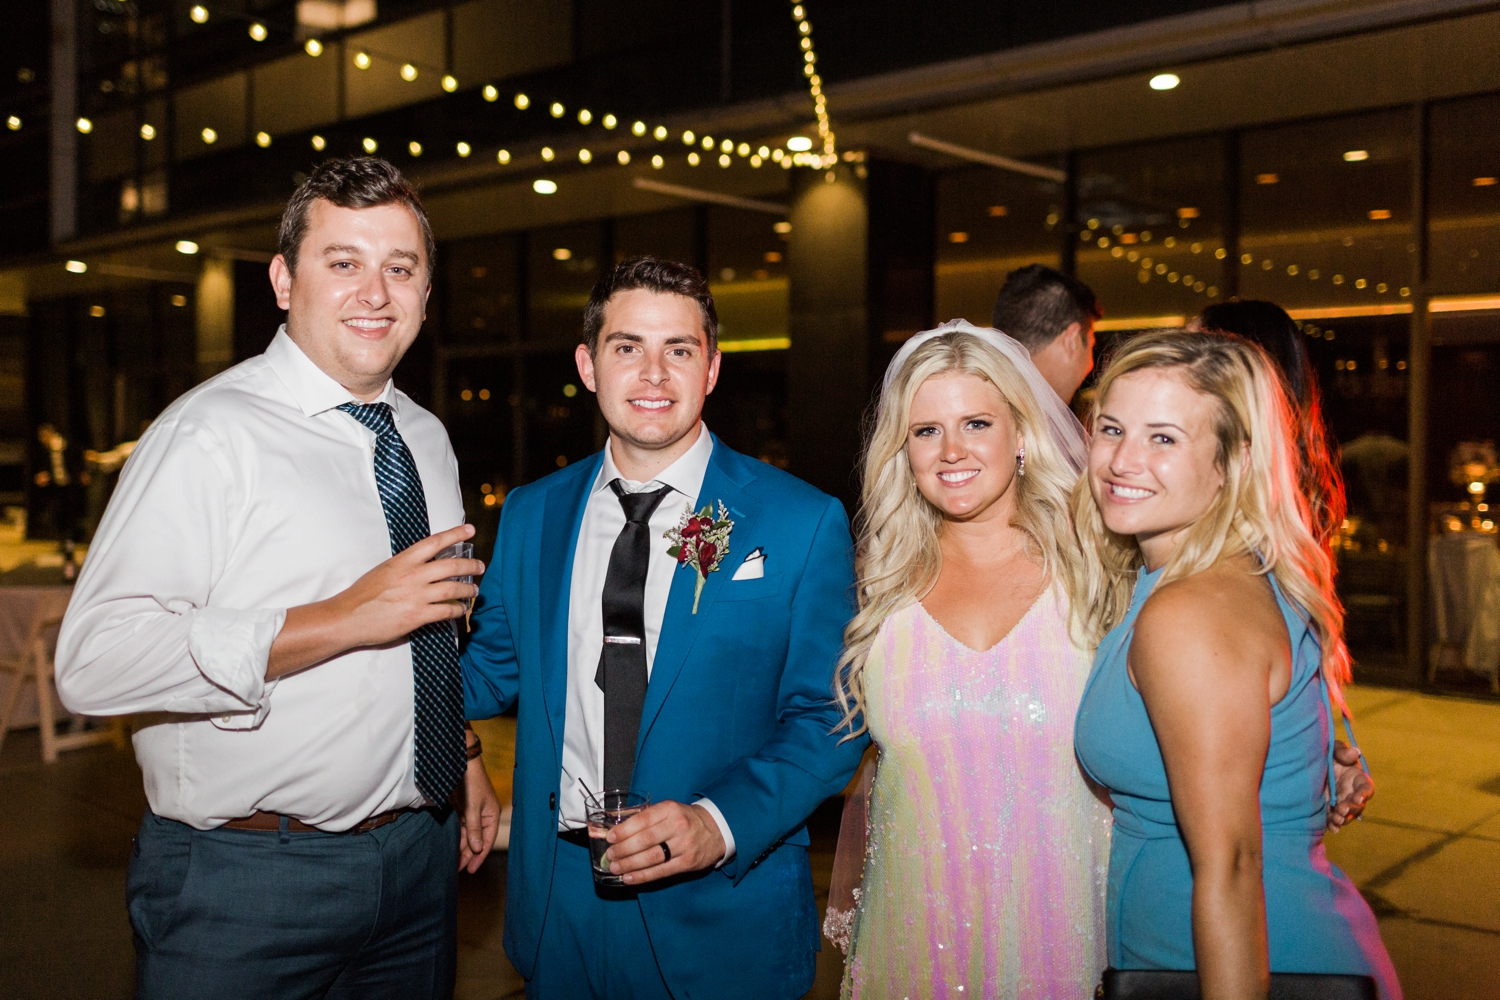 regions-tower-rooftop-wedding-downtown-indianapolis_0873.jpg